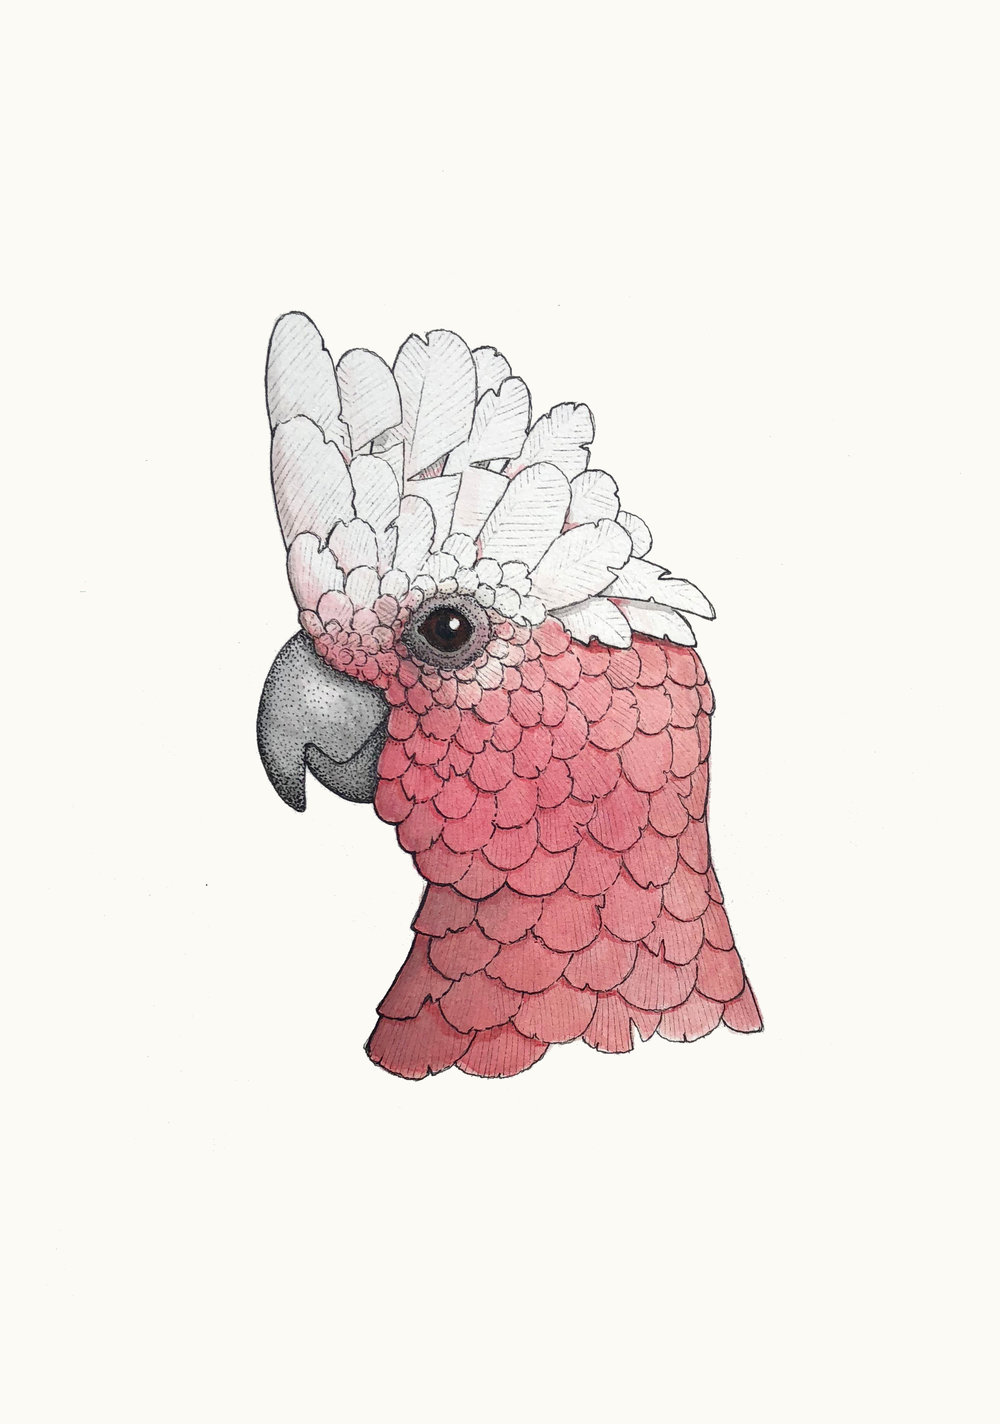 'Portrait of a Galah'